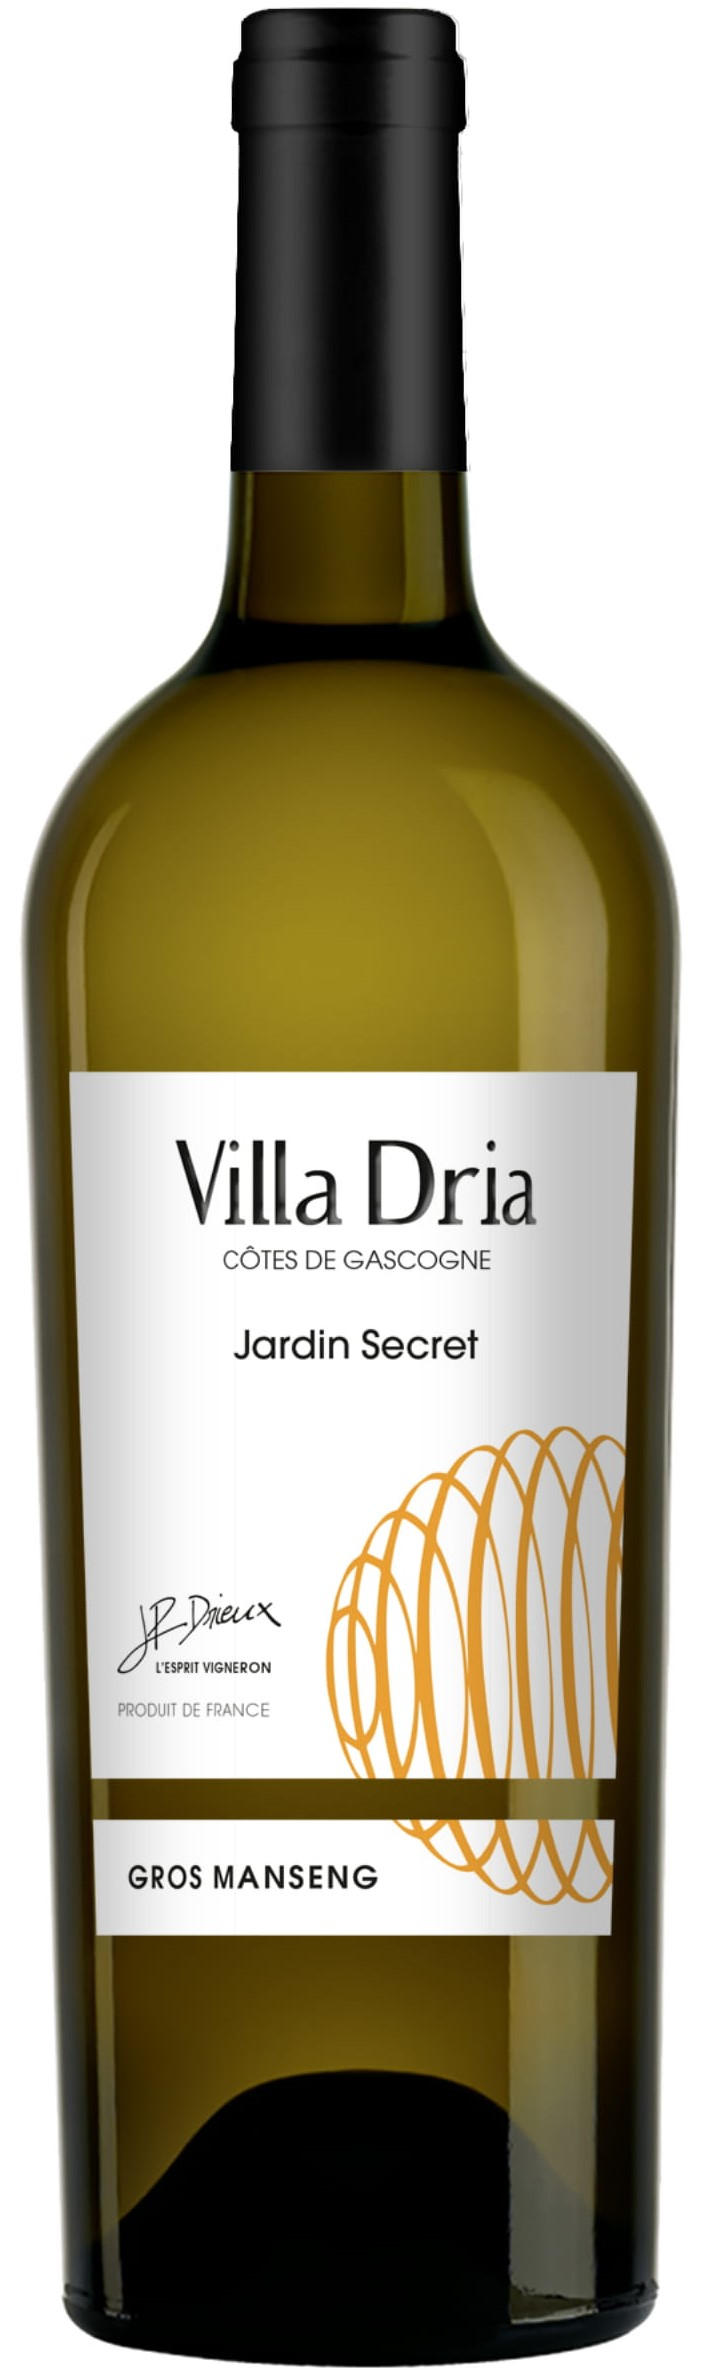 Jardin secret 2017/2018